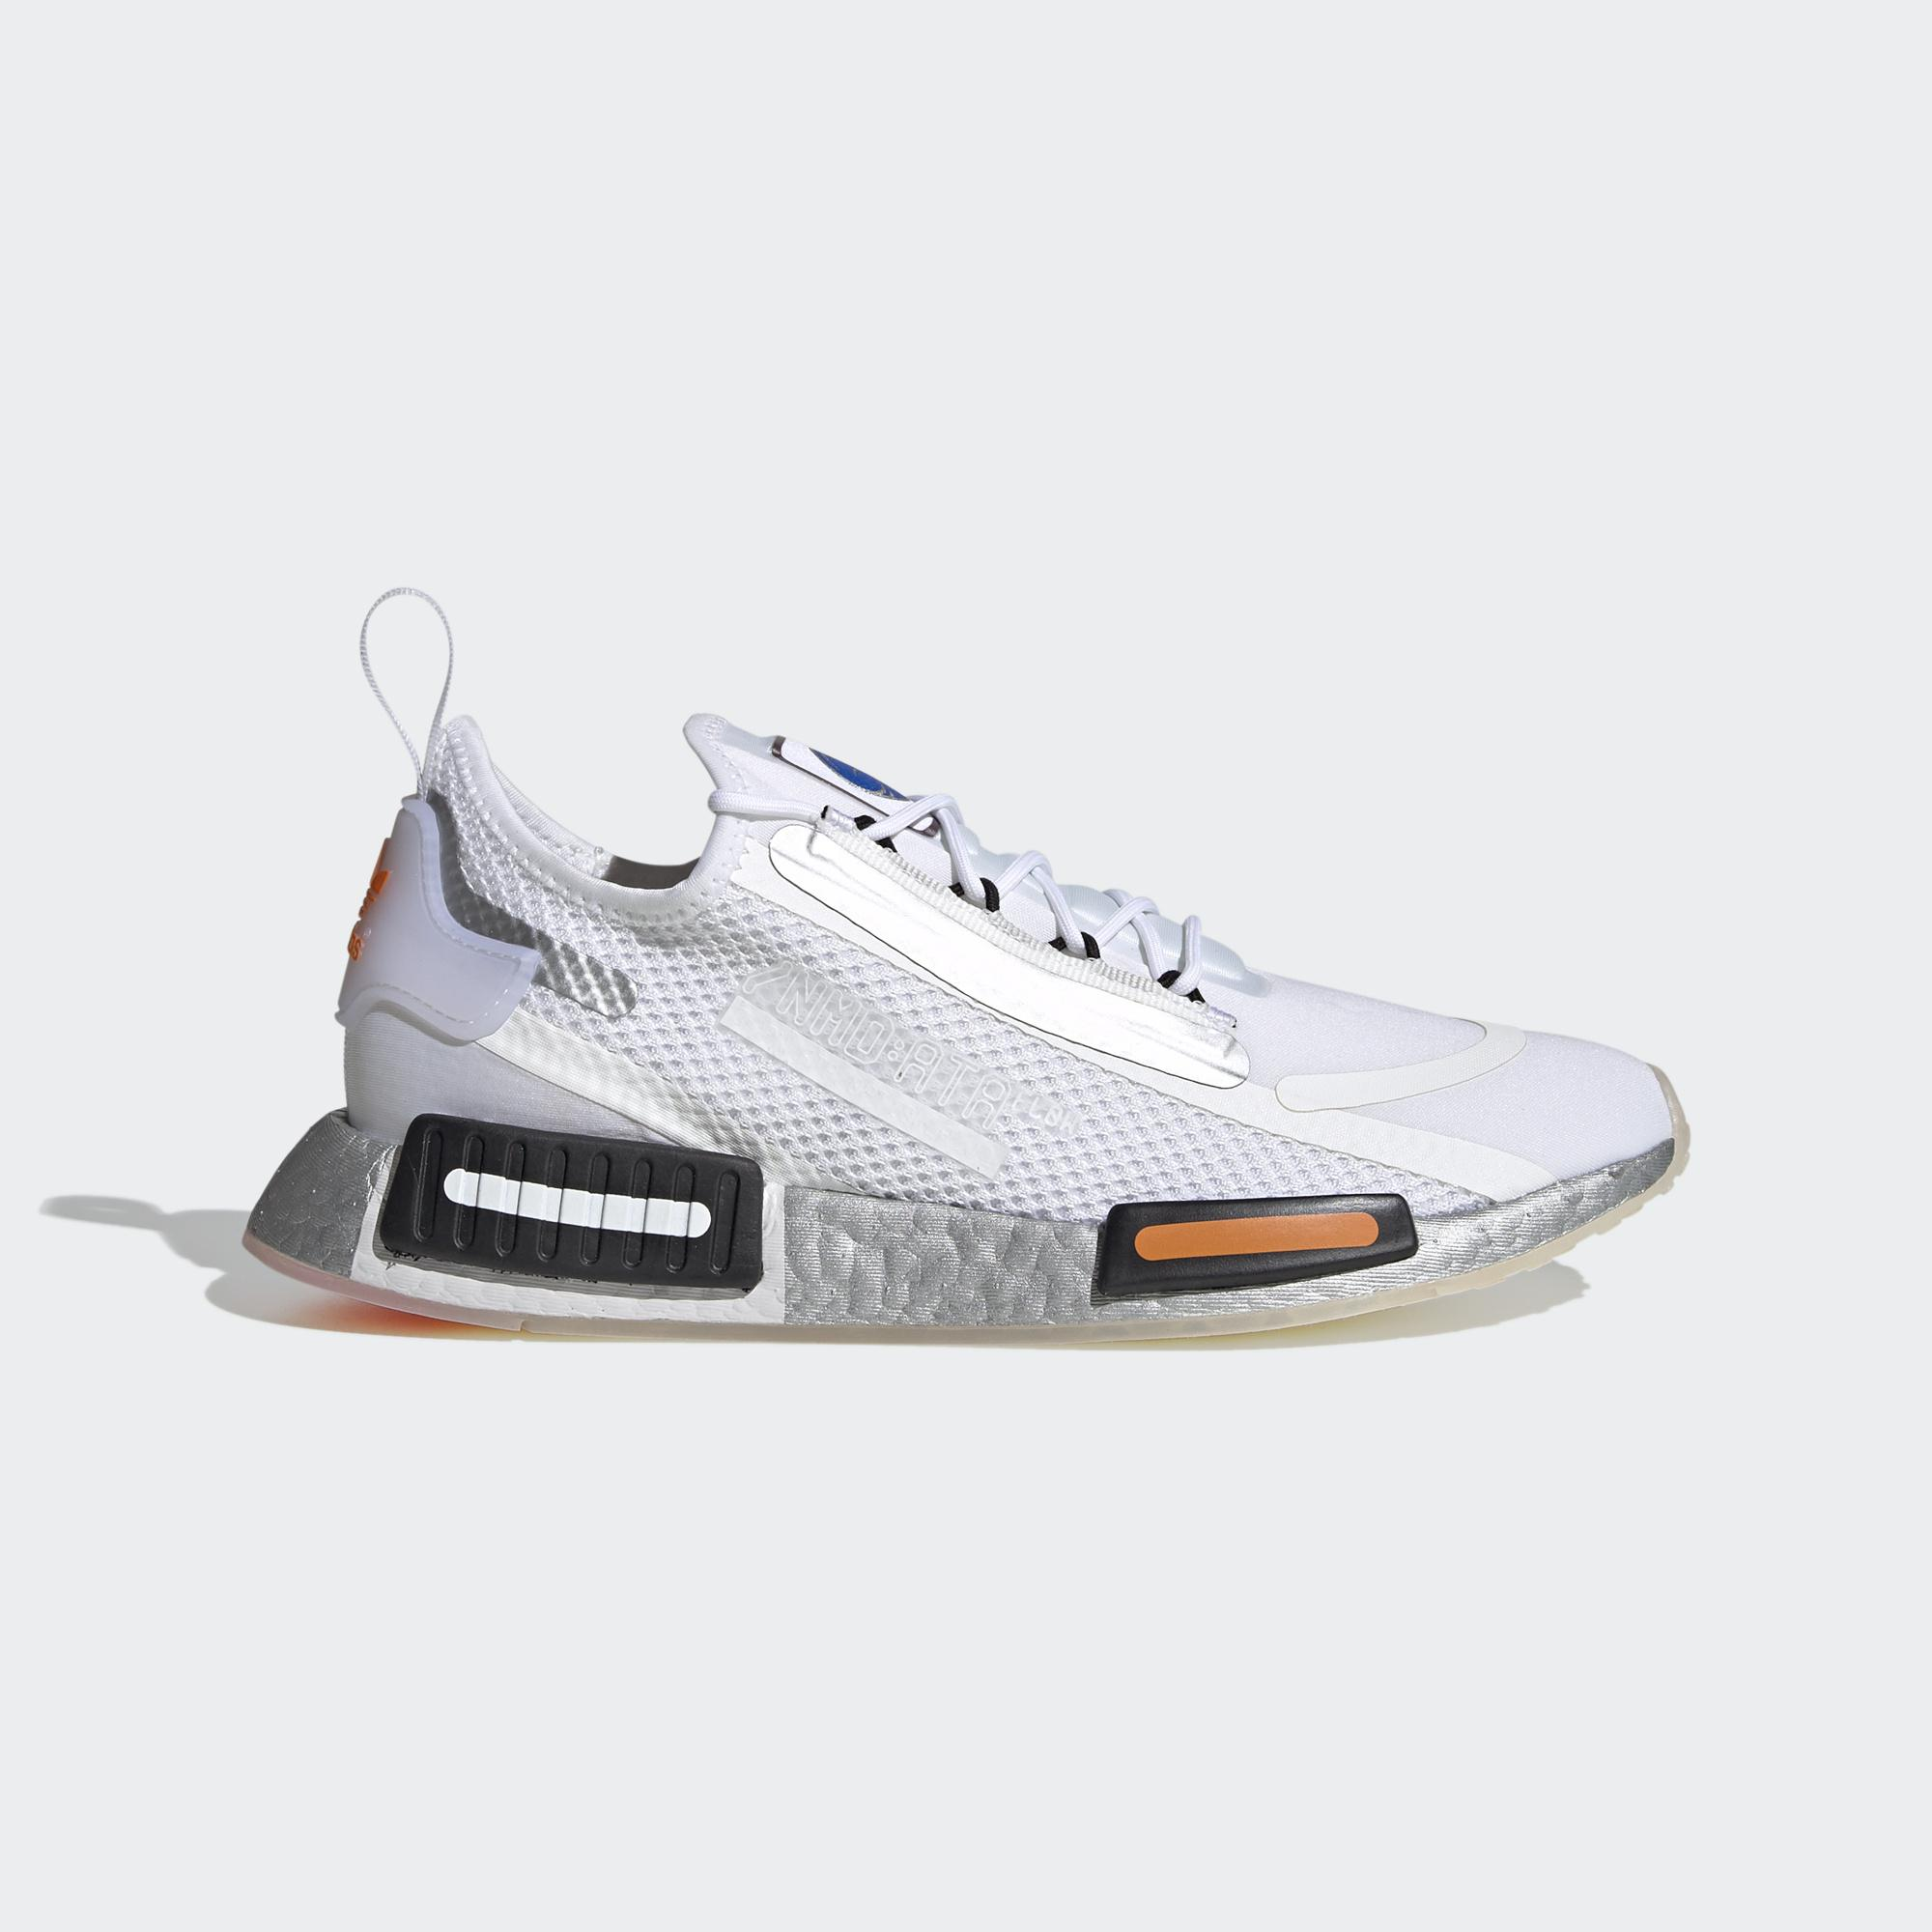 SPACE RACE NMD_R1 Spectoo 經典鞋